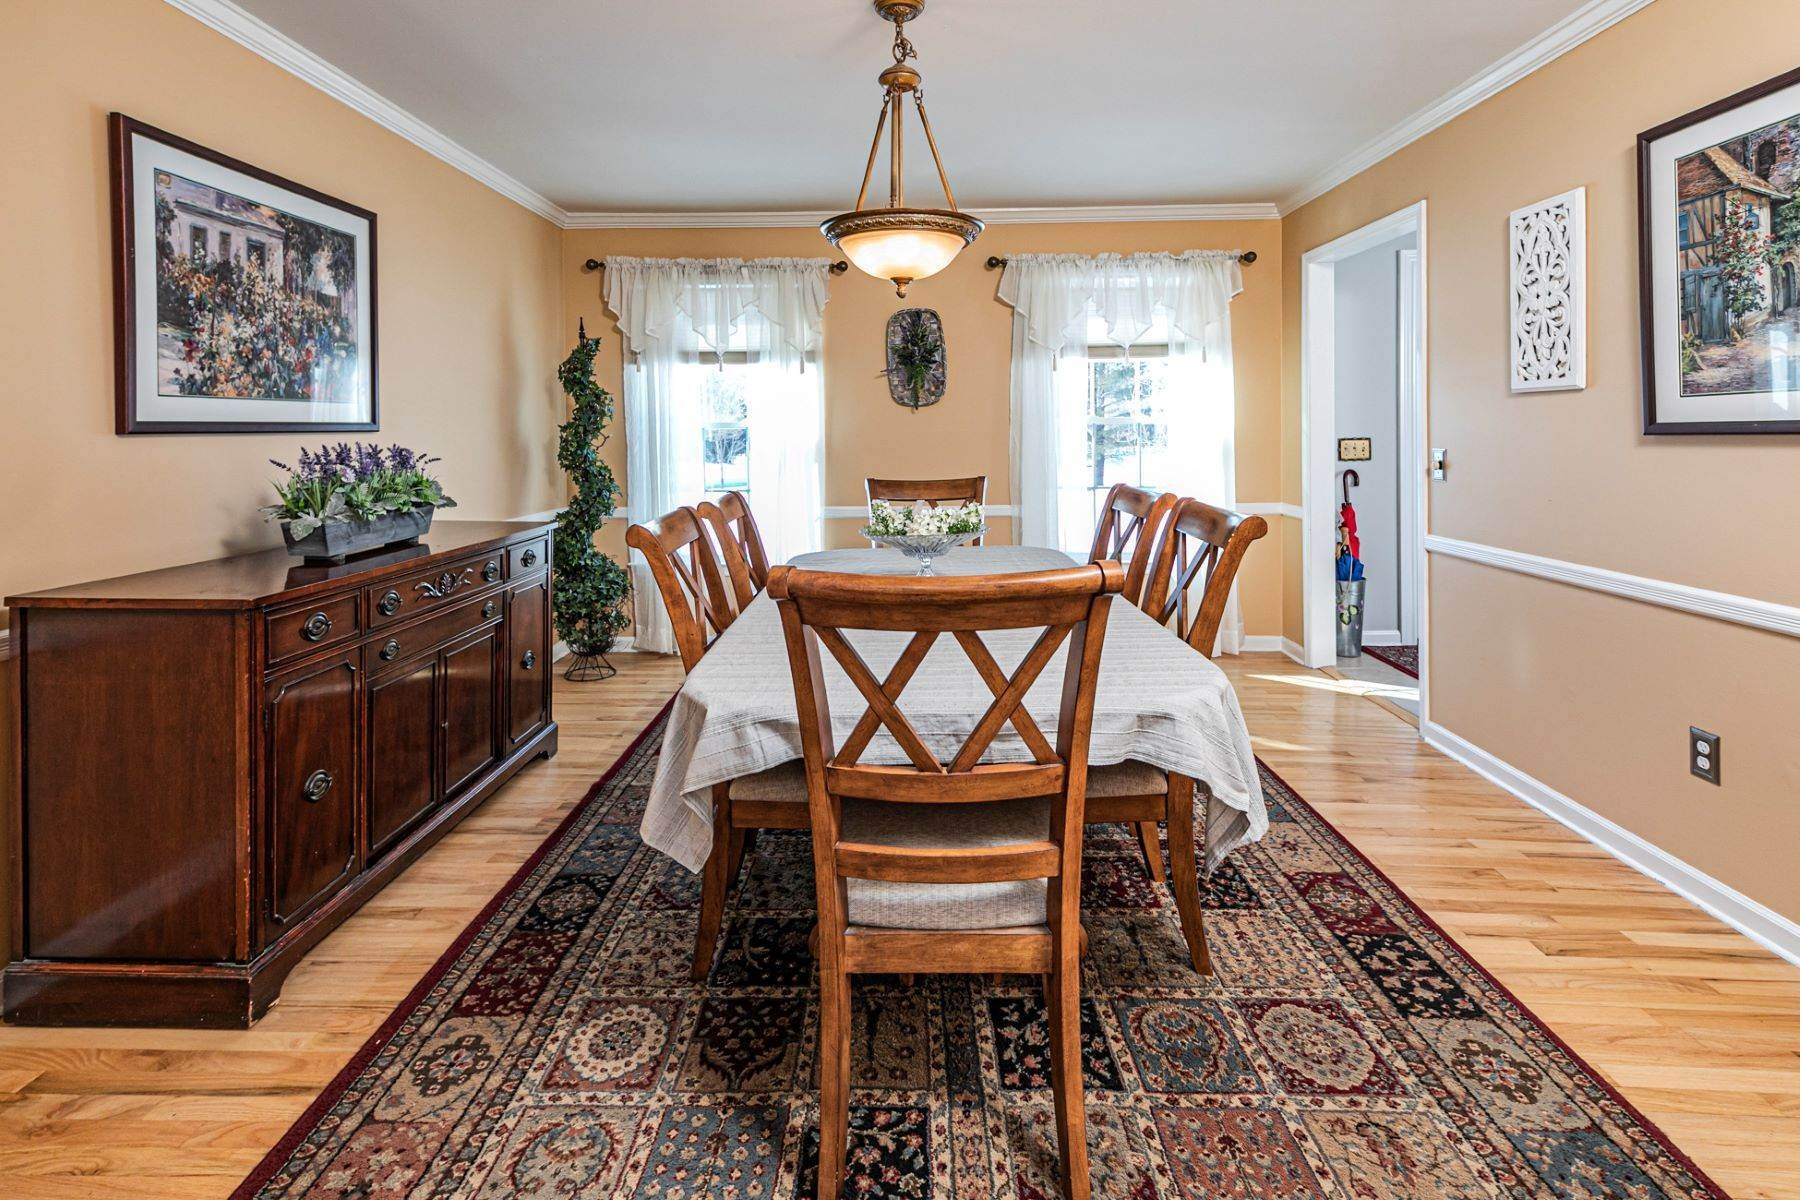 11. Single Family Homes for Sale at Life Doesn't Get Much Better! 20 Dehart Drive, Belle Mead, New Jersey 08502 United States